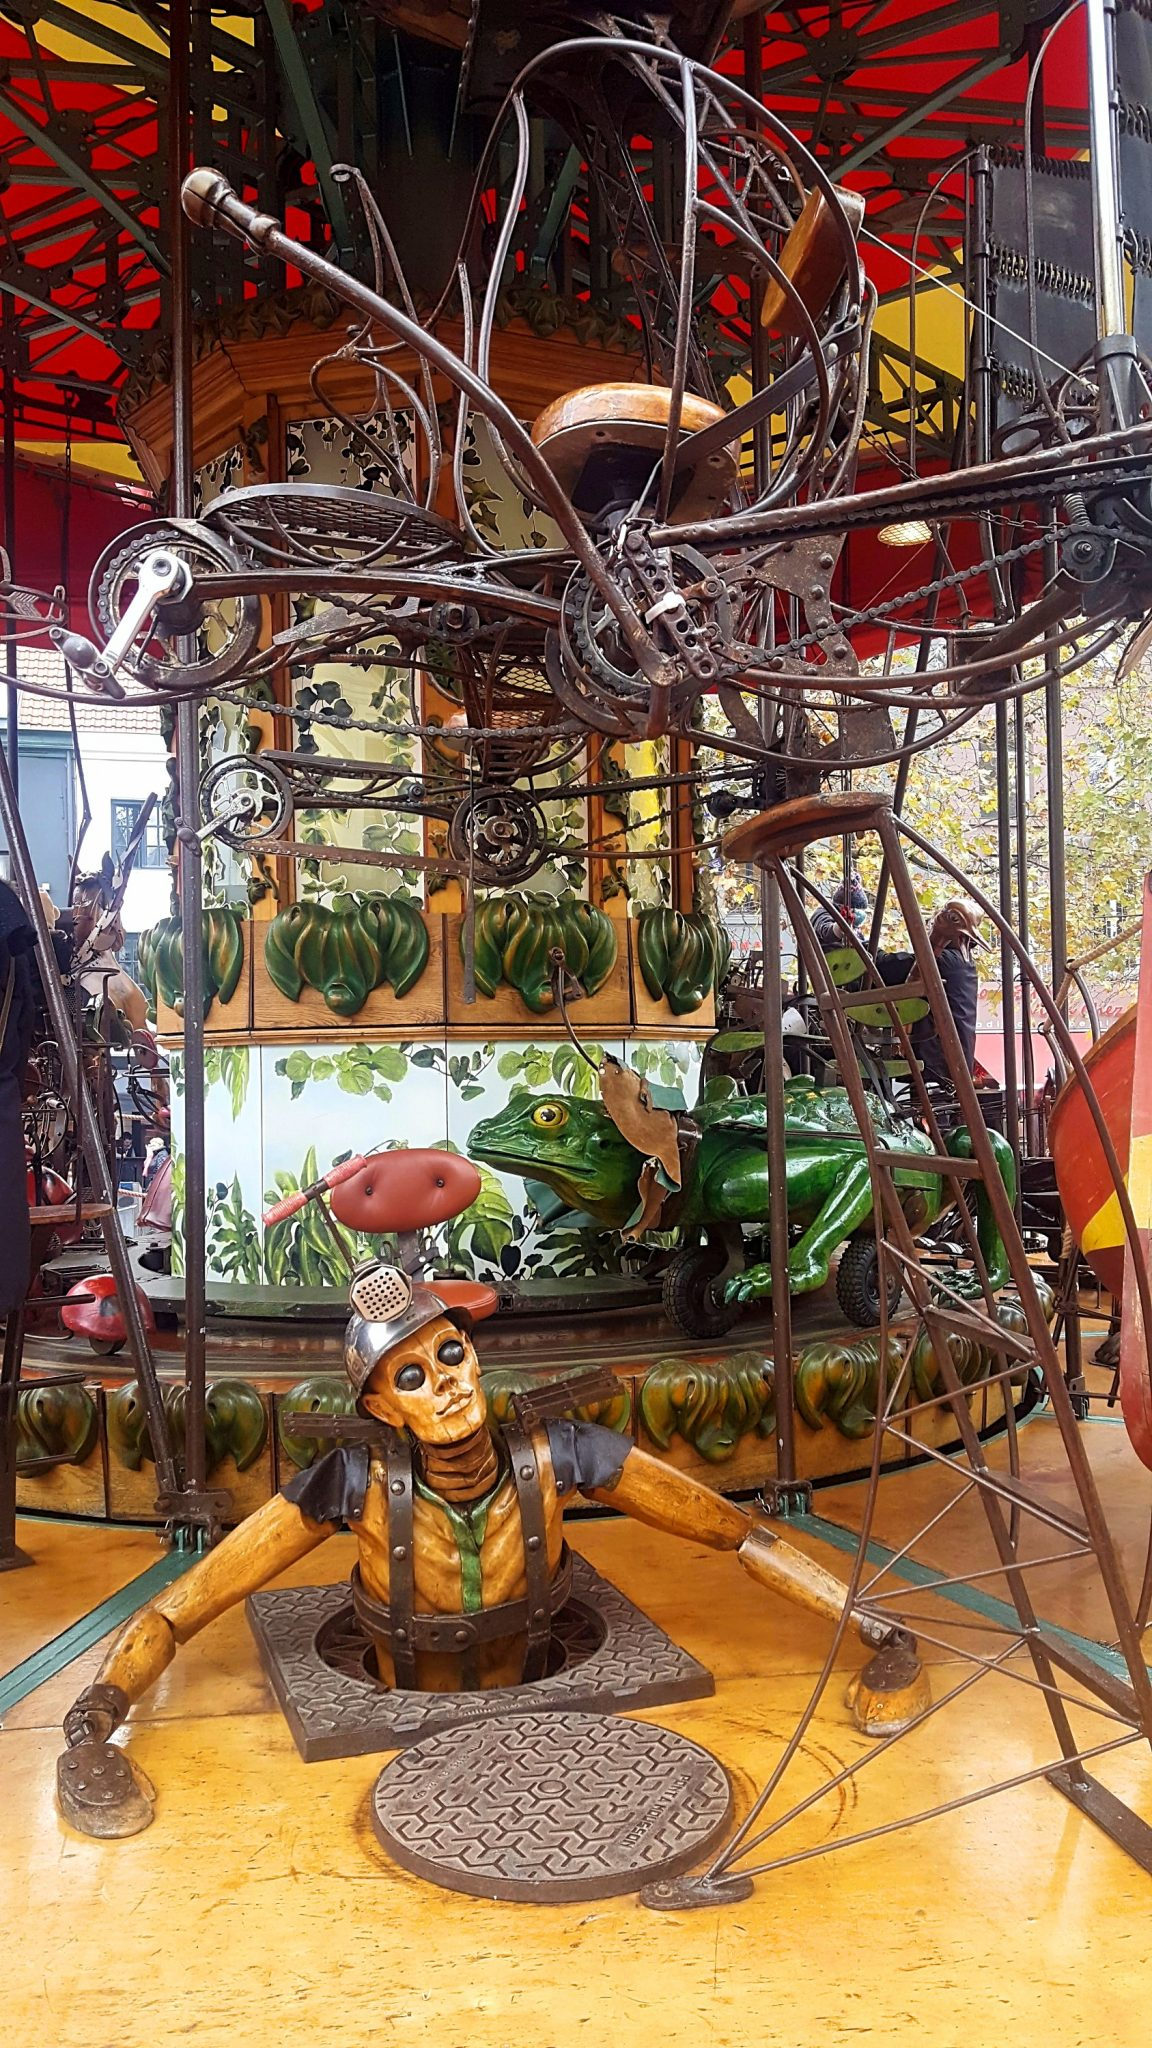 A steampunk-themed carousel.